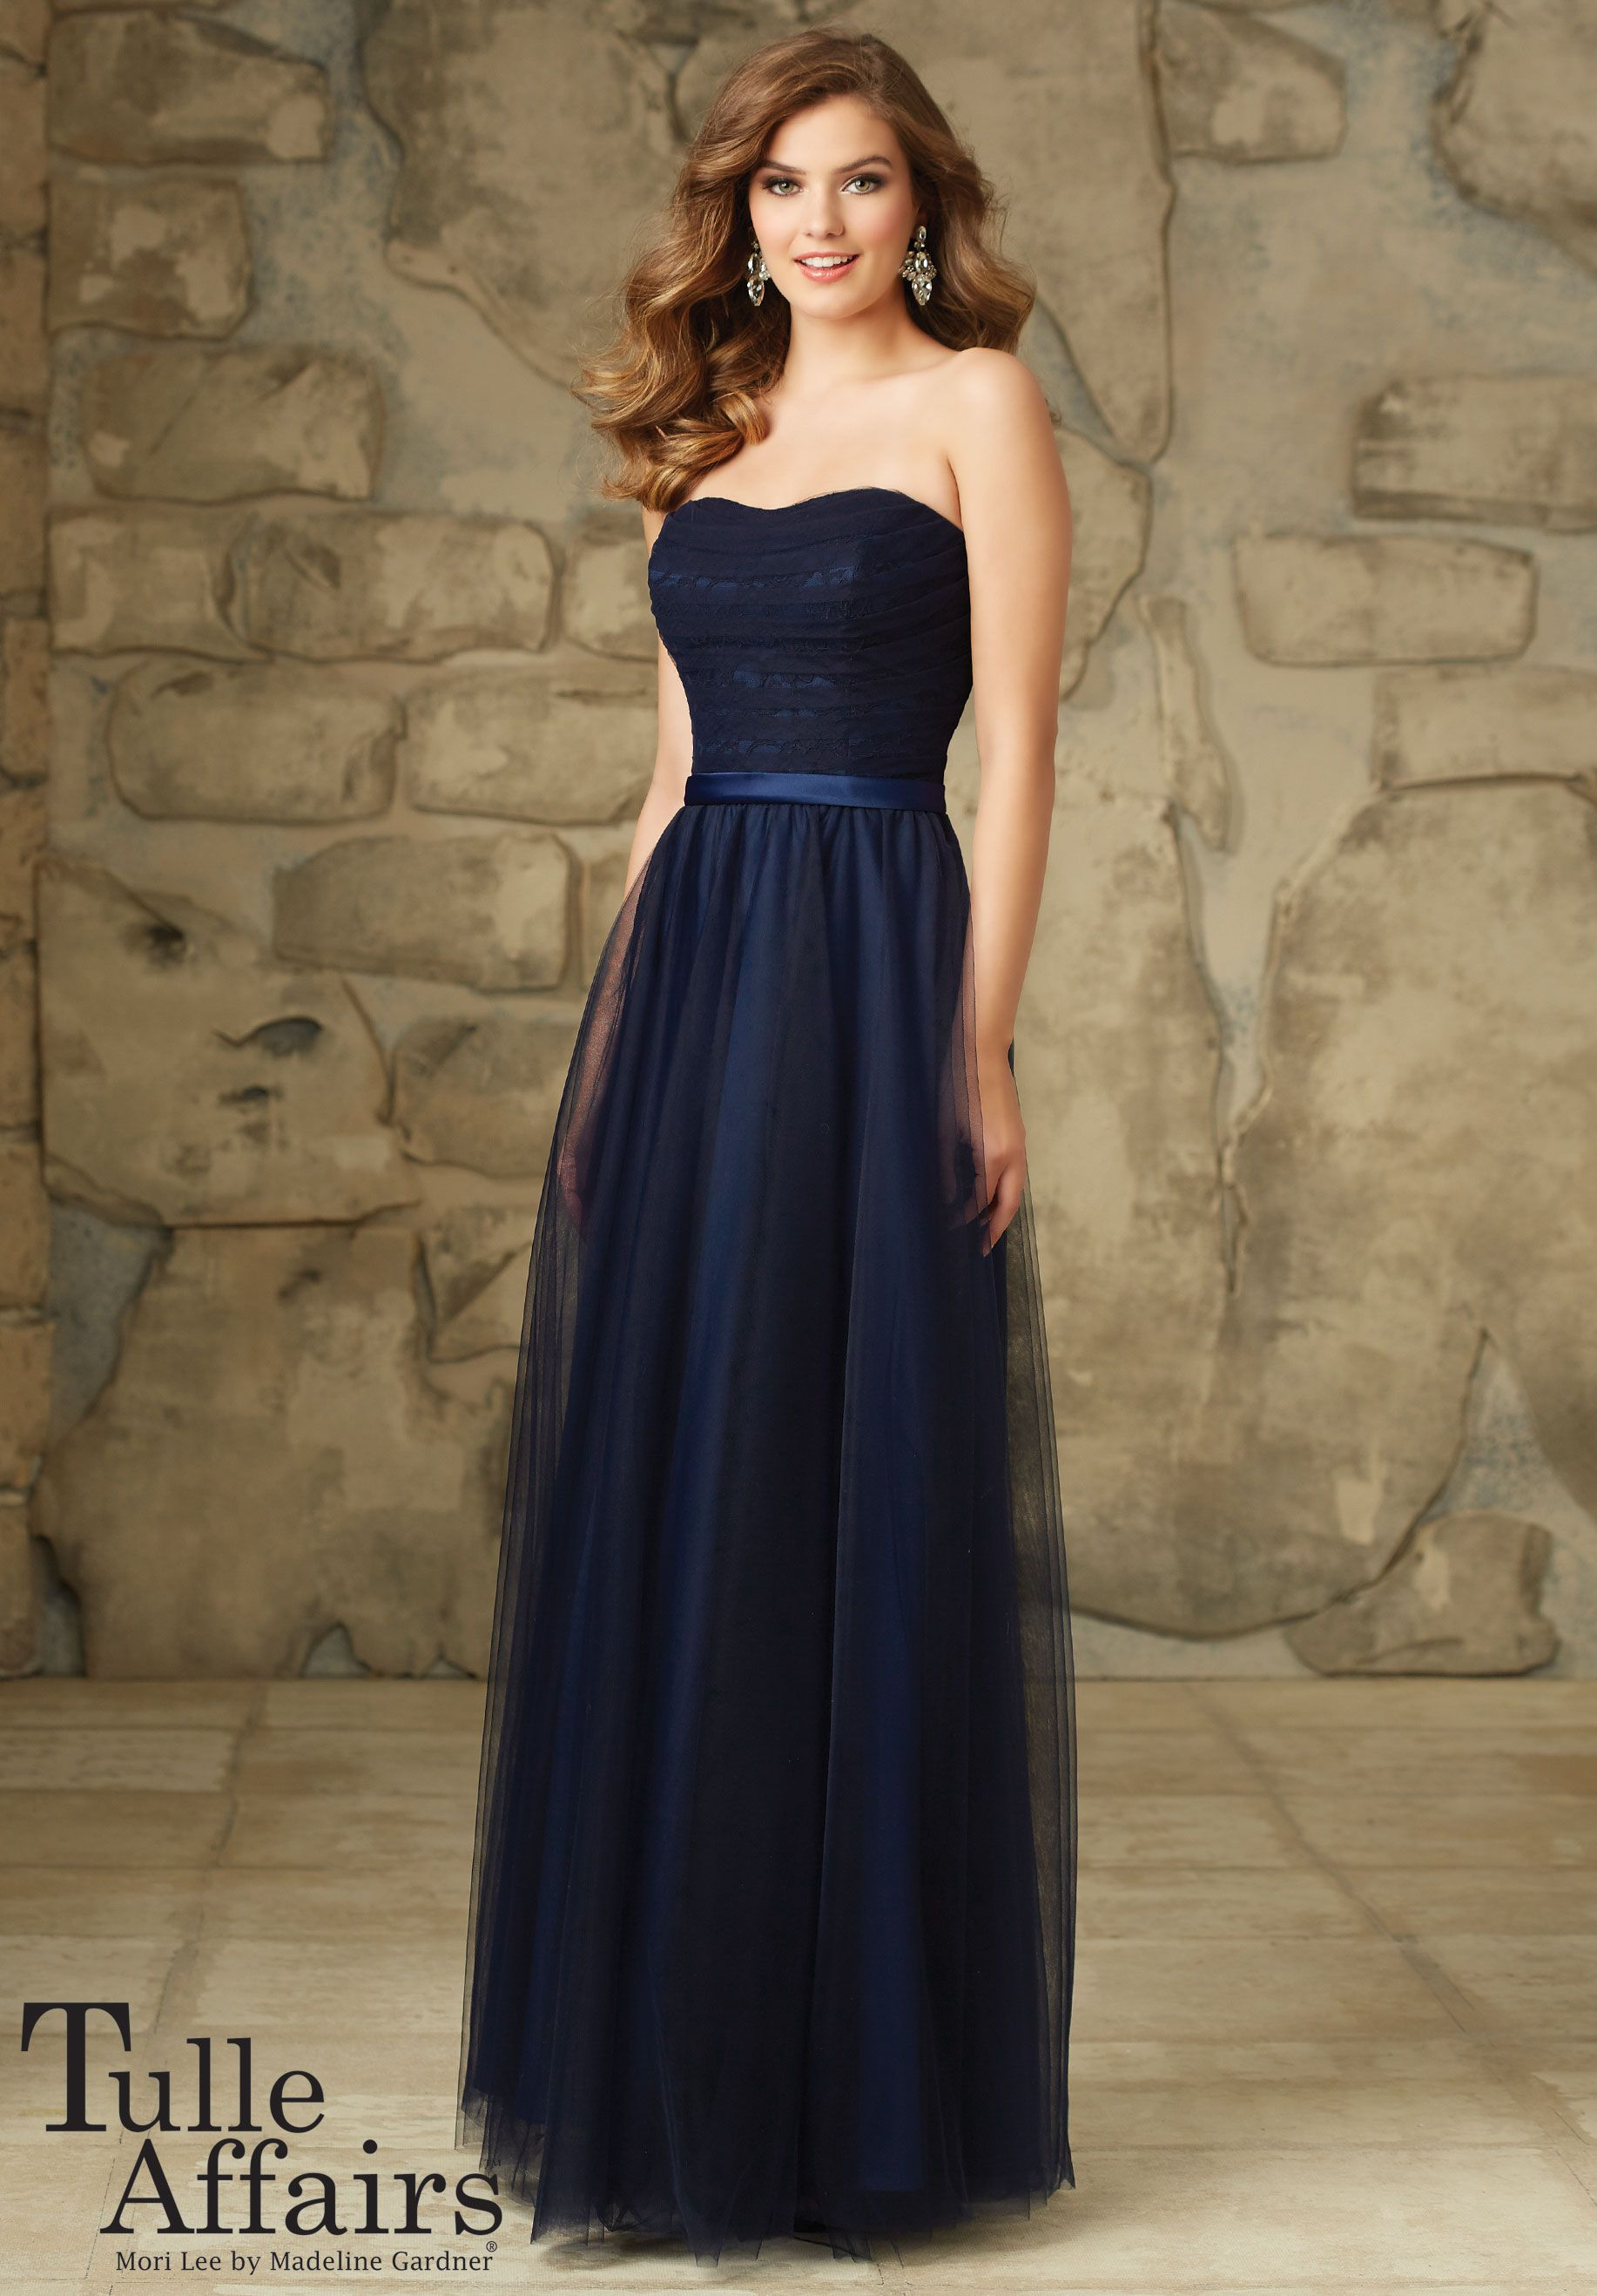 Bridesmaids Dress 116 - Tulle Affairs Lace and Tulle Satin Belt ...